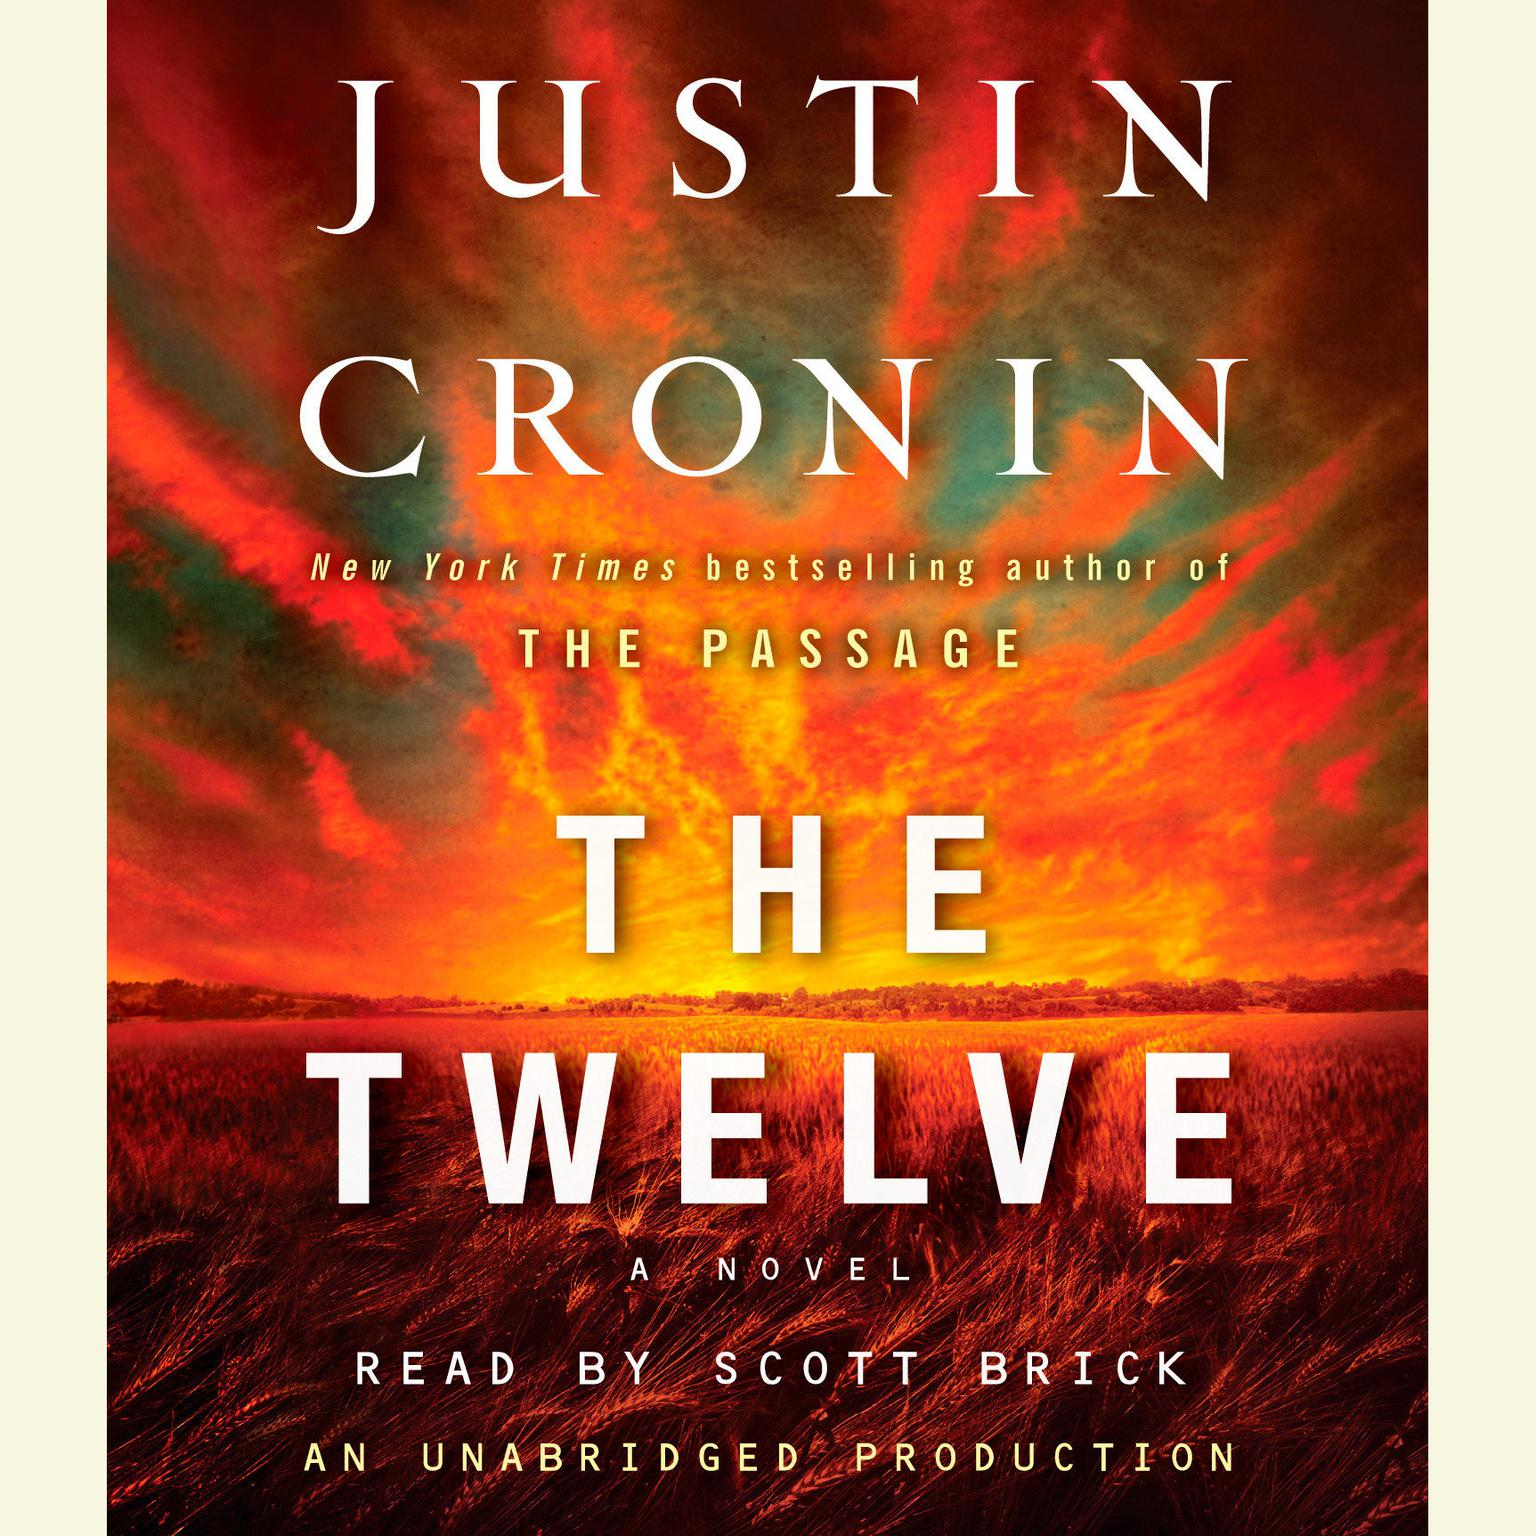 Printable The Twelve (Book Two of The Passage Trilogy): A Novel Audiobook Cover Art